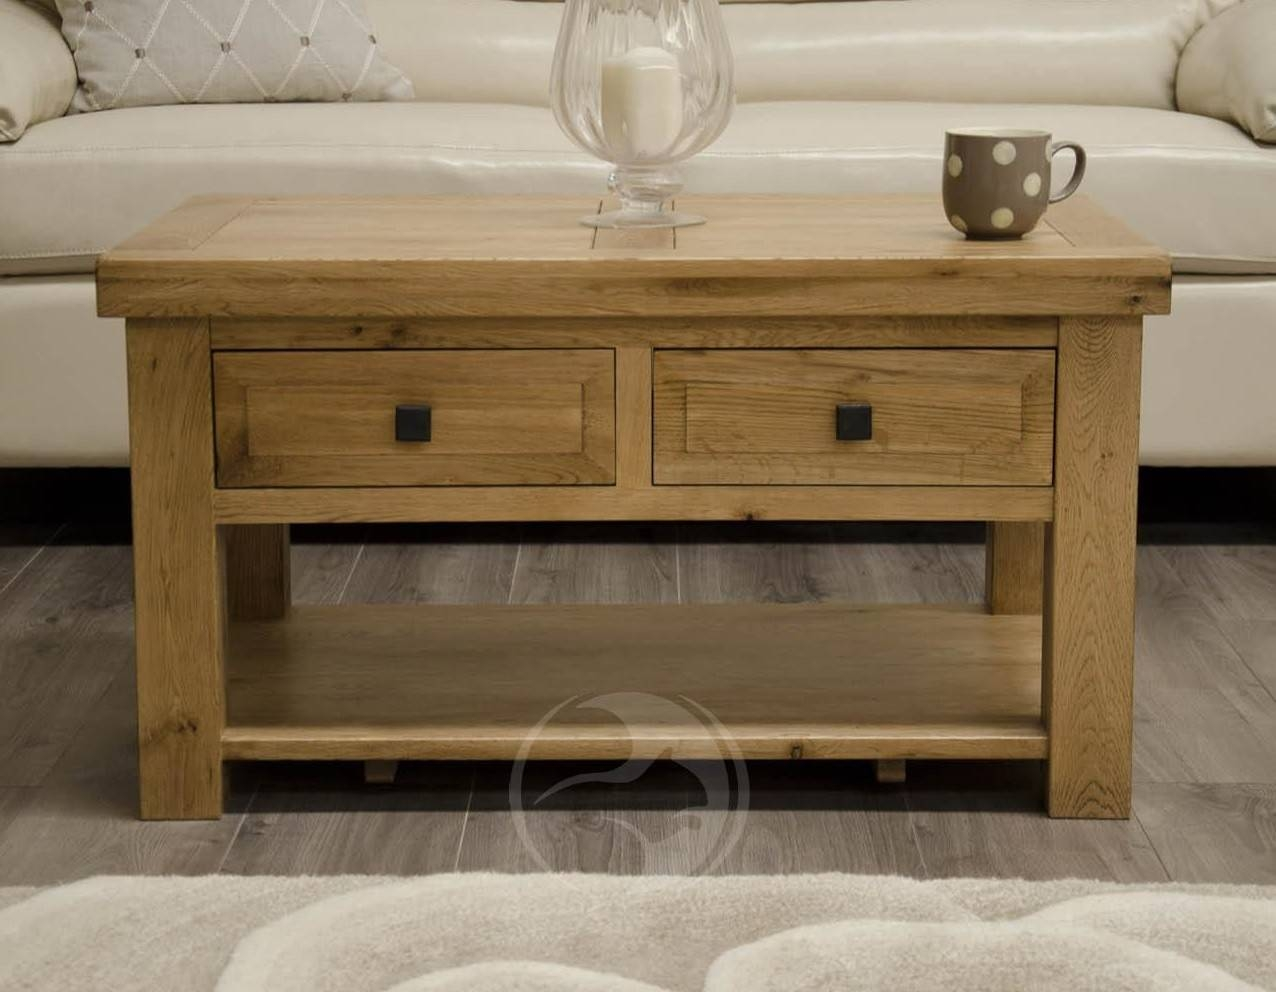 Coniston Rustic Solid Oak Coffee Table With Drawers | Oak Furniture Uk  Pertaining To Rustic Oak